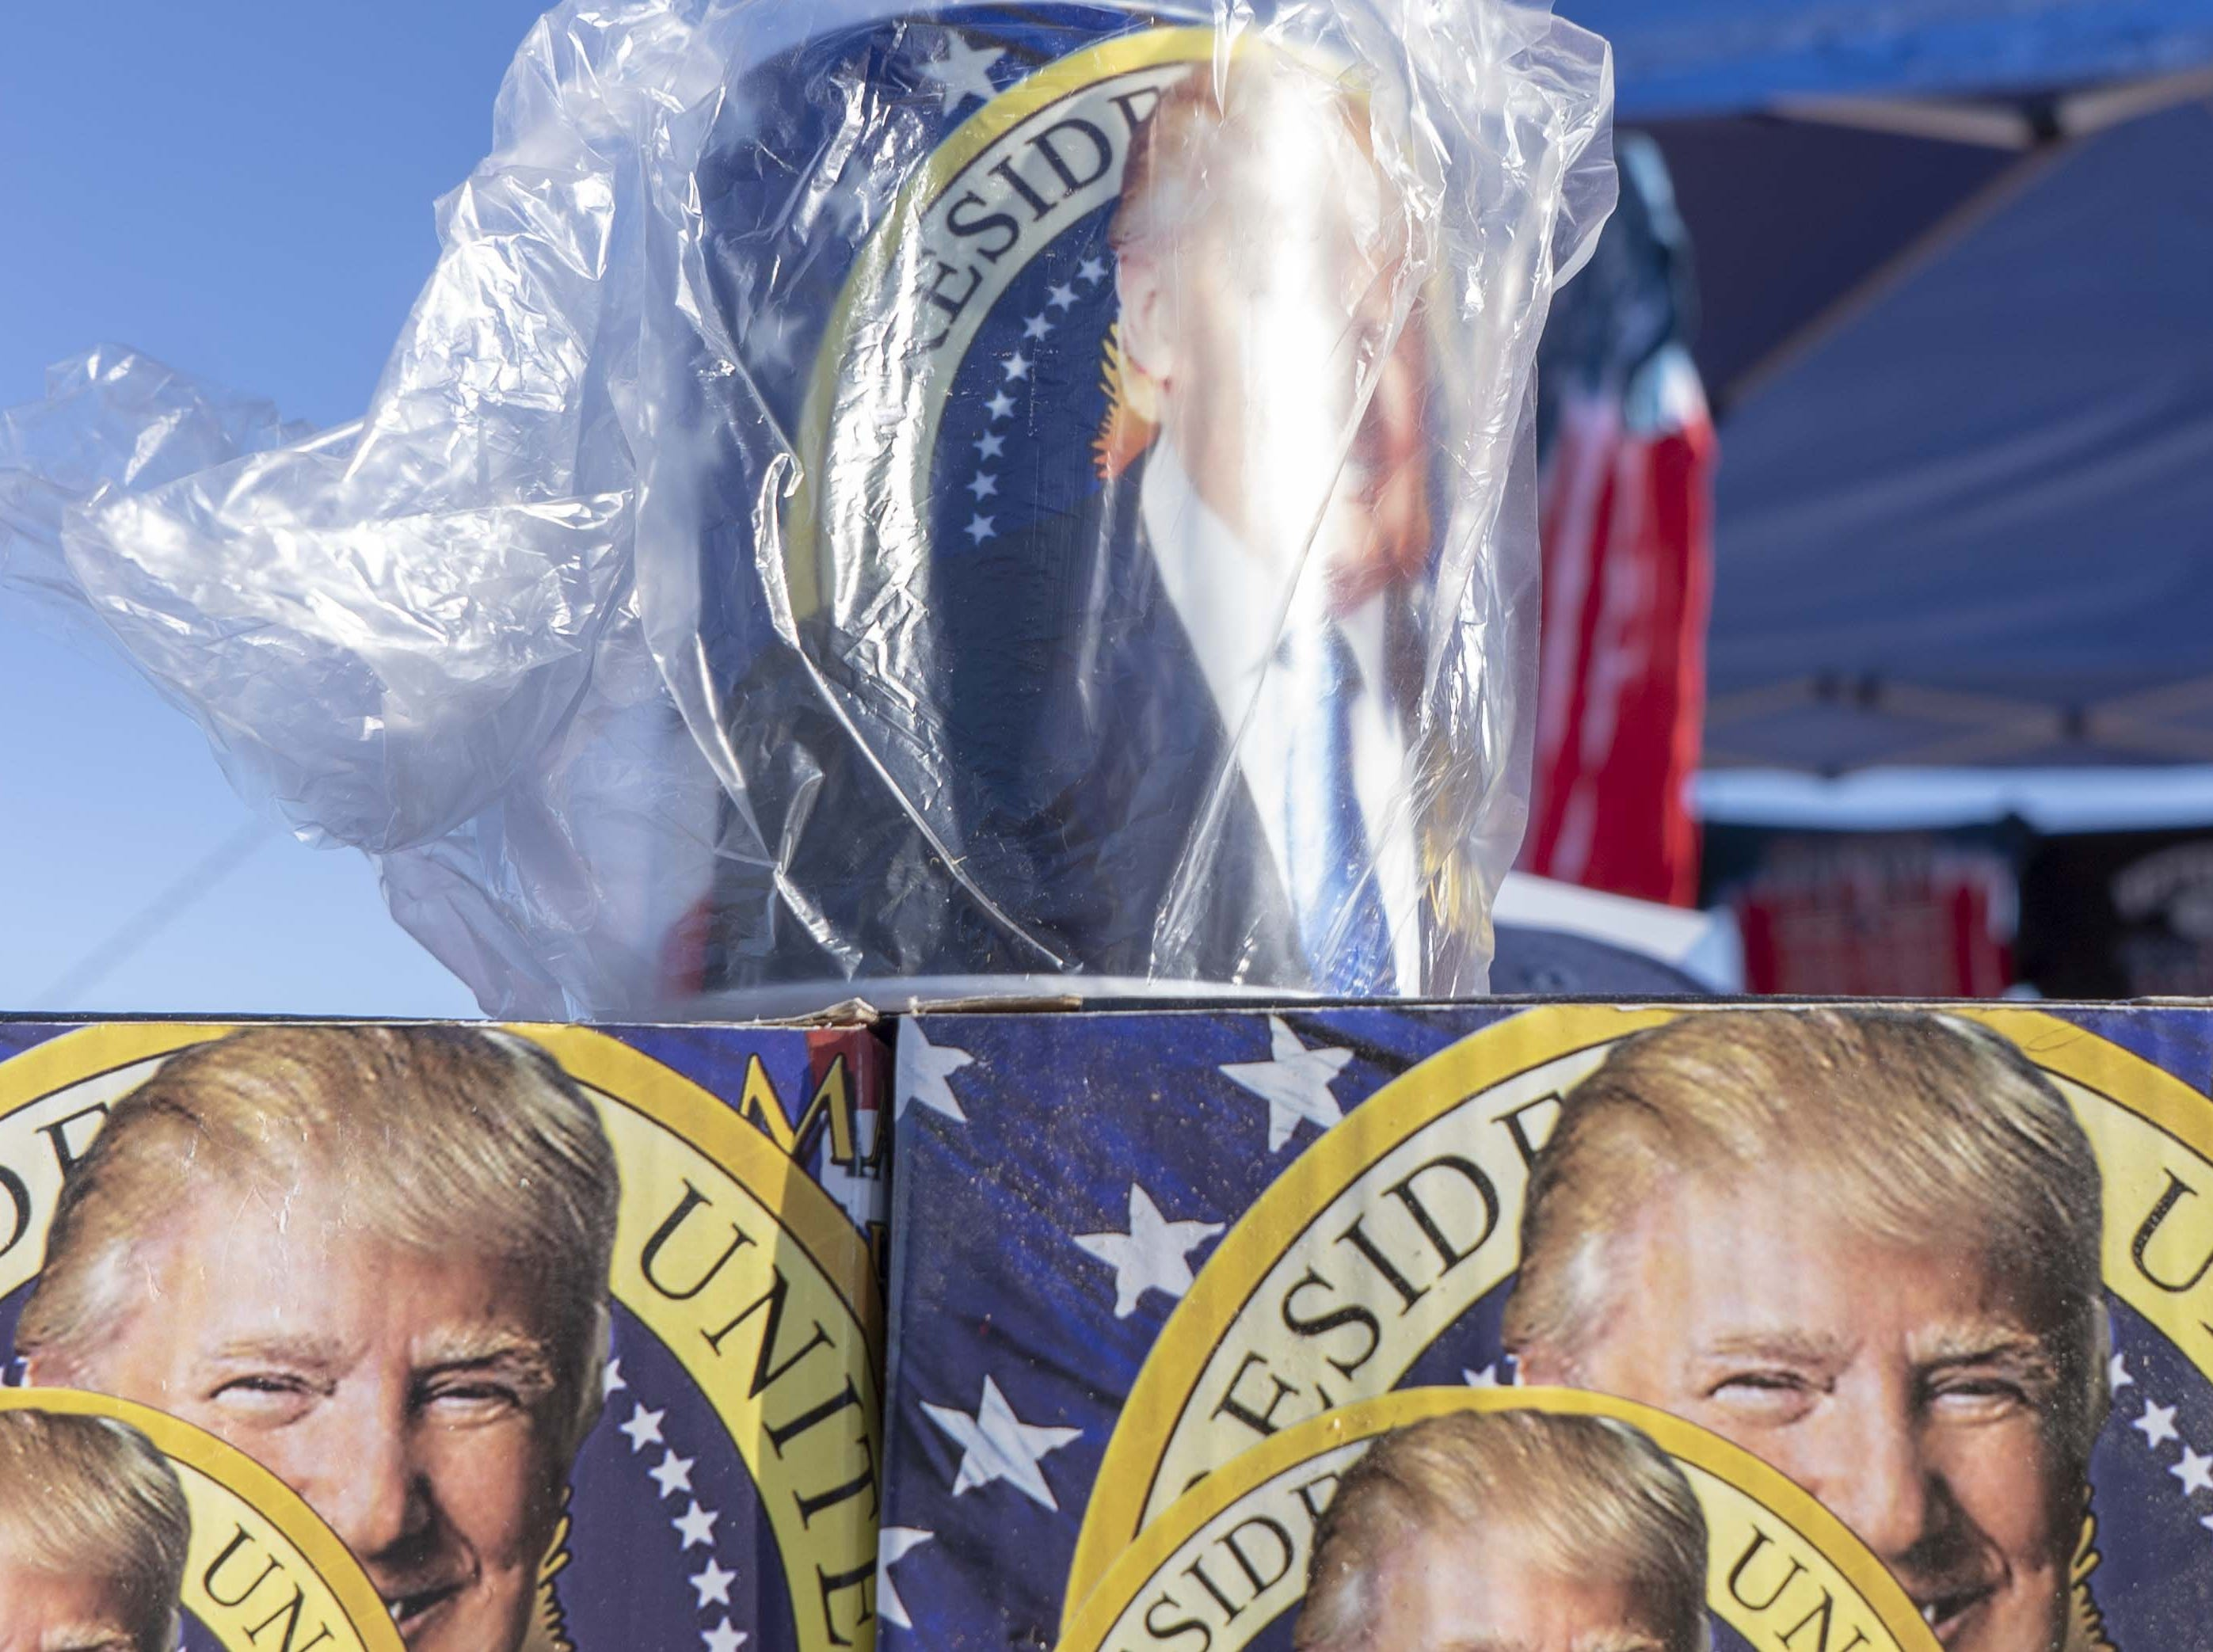 Showing support for President Donald Trump at a rally for Martha McSally at Phoenix-Mesa Gateway Airport on Oct. 19, 2018.